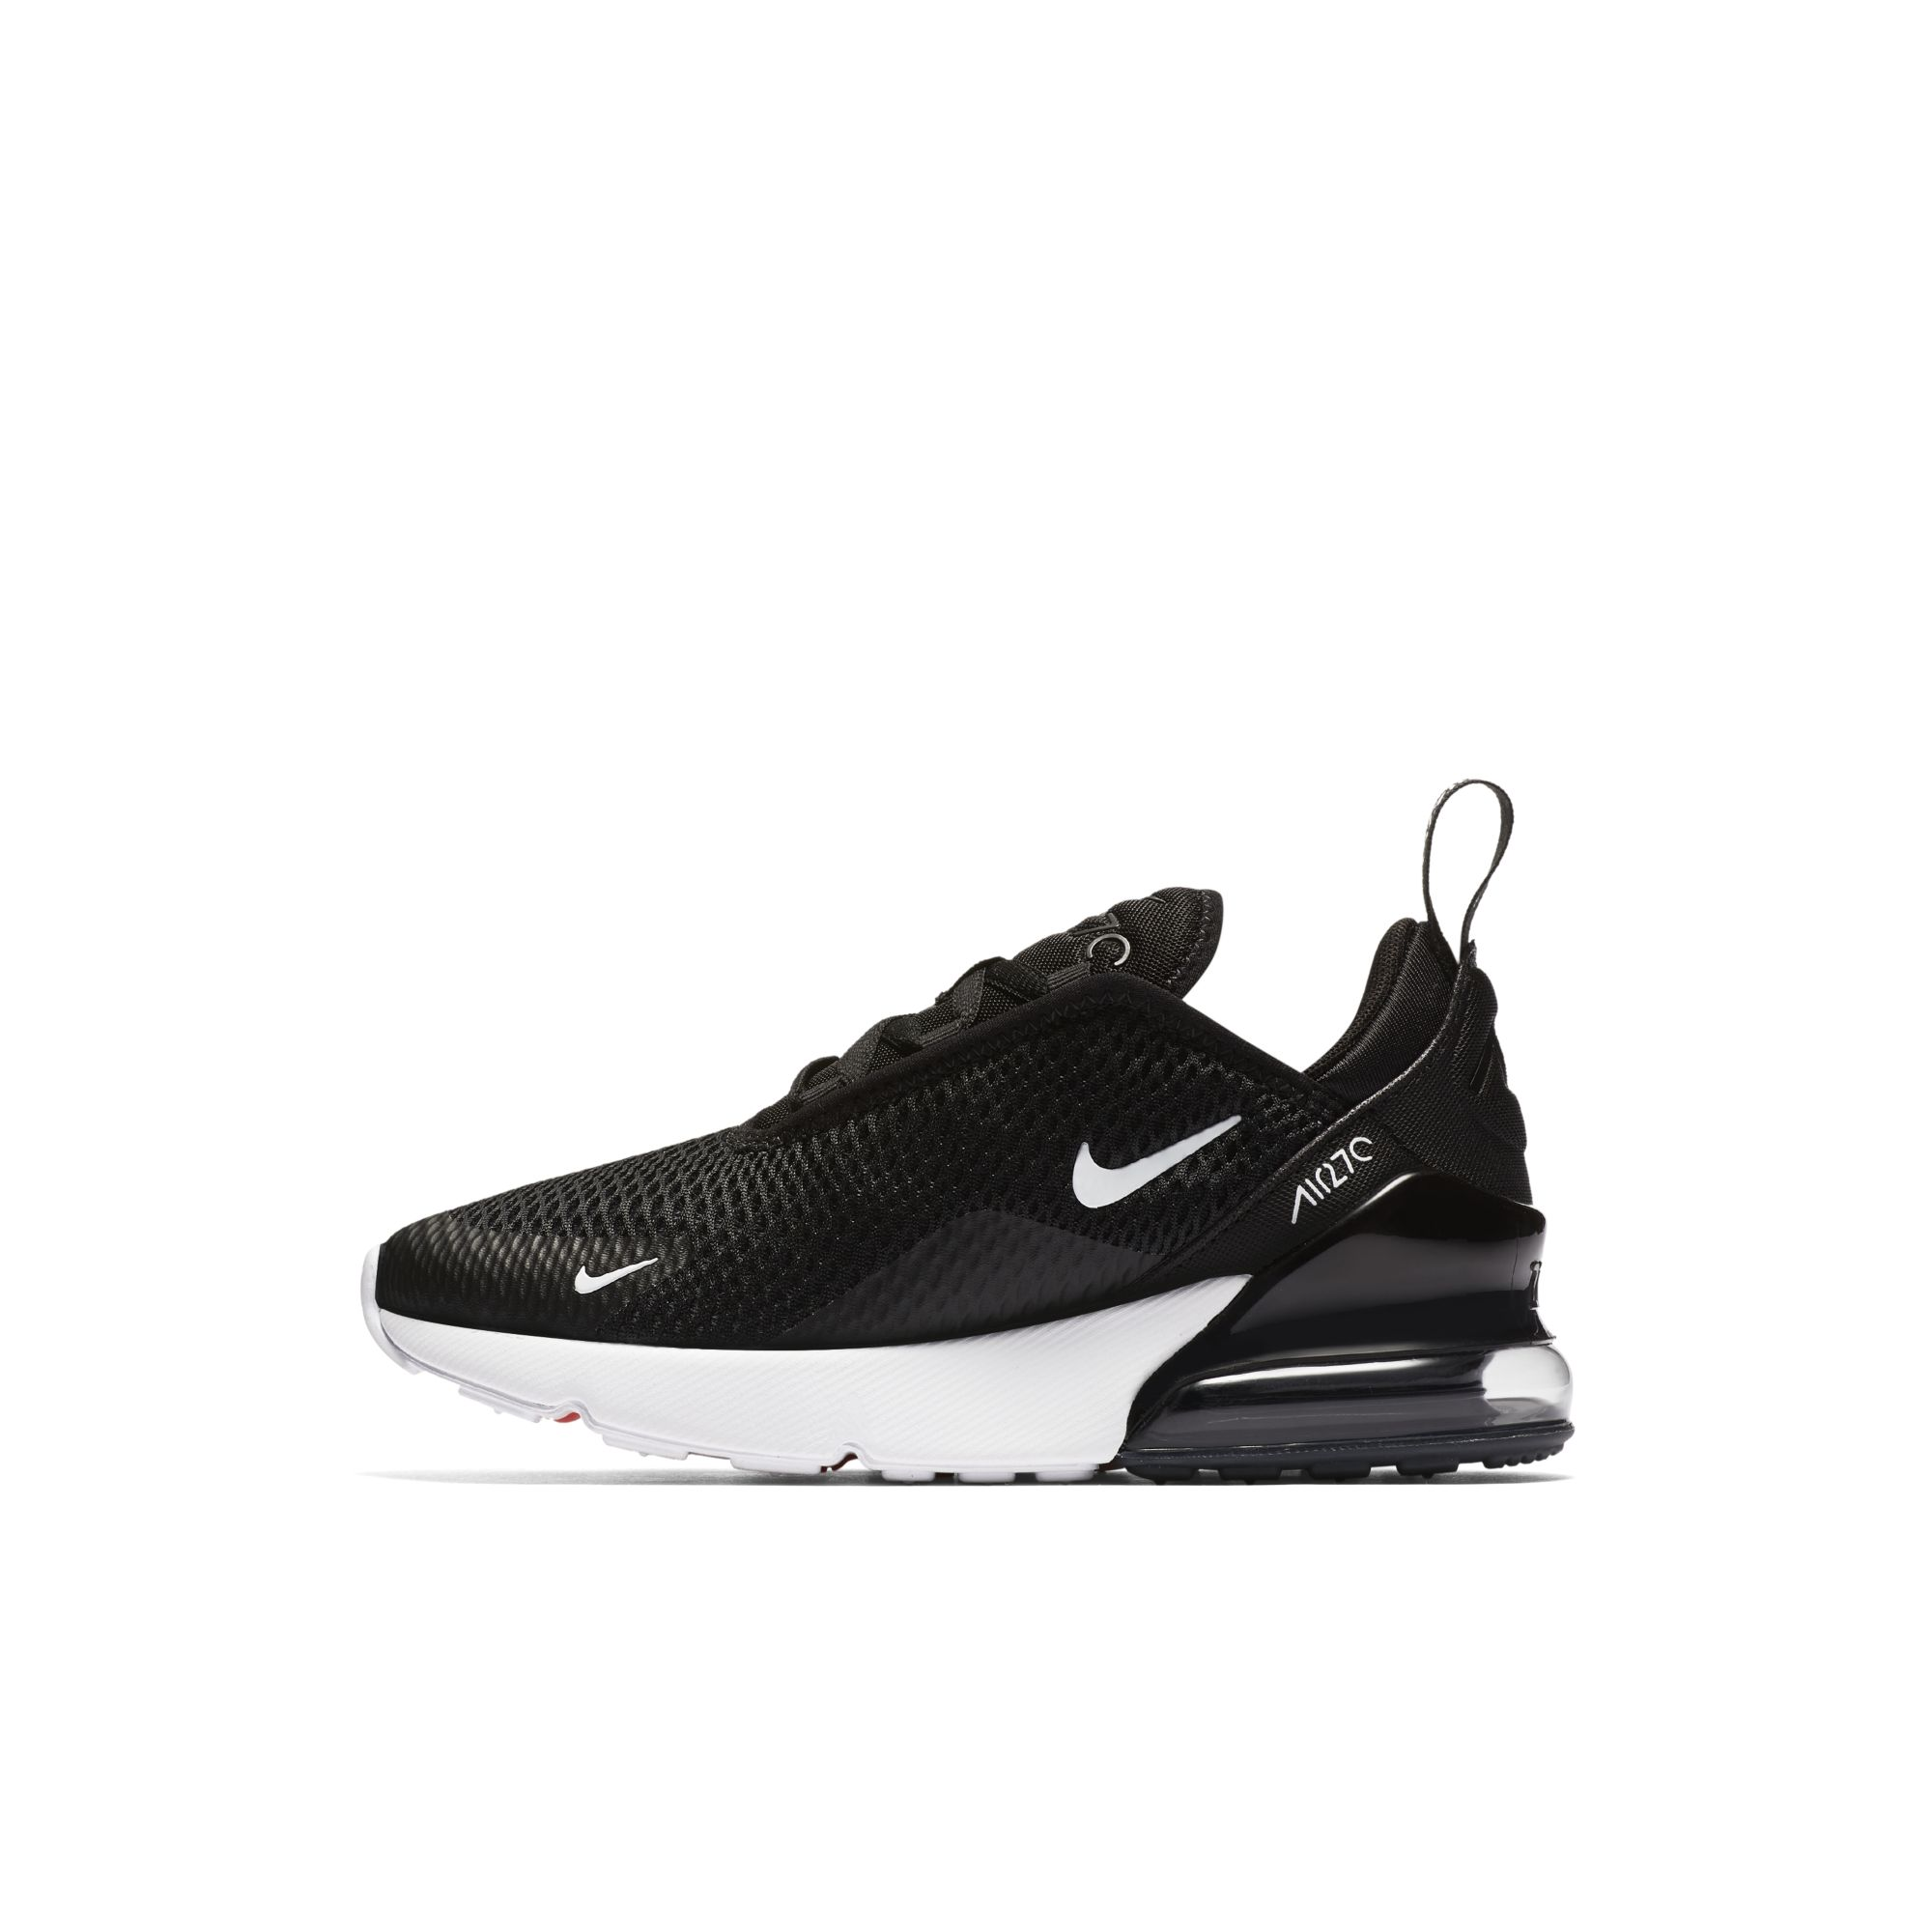 NIKE AIR MAX 270 enfants Original enfants chaussures de course Sports confortables en plein AIR maille baskets #943345 - 2